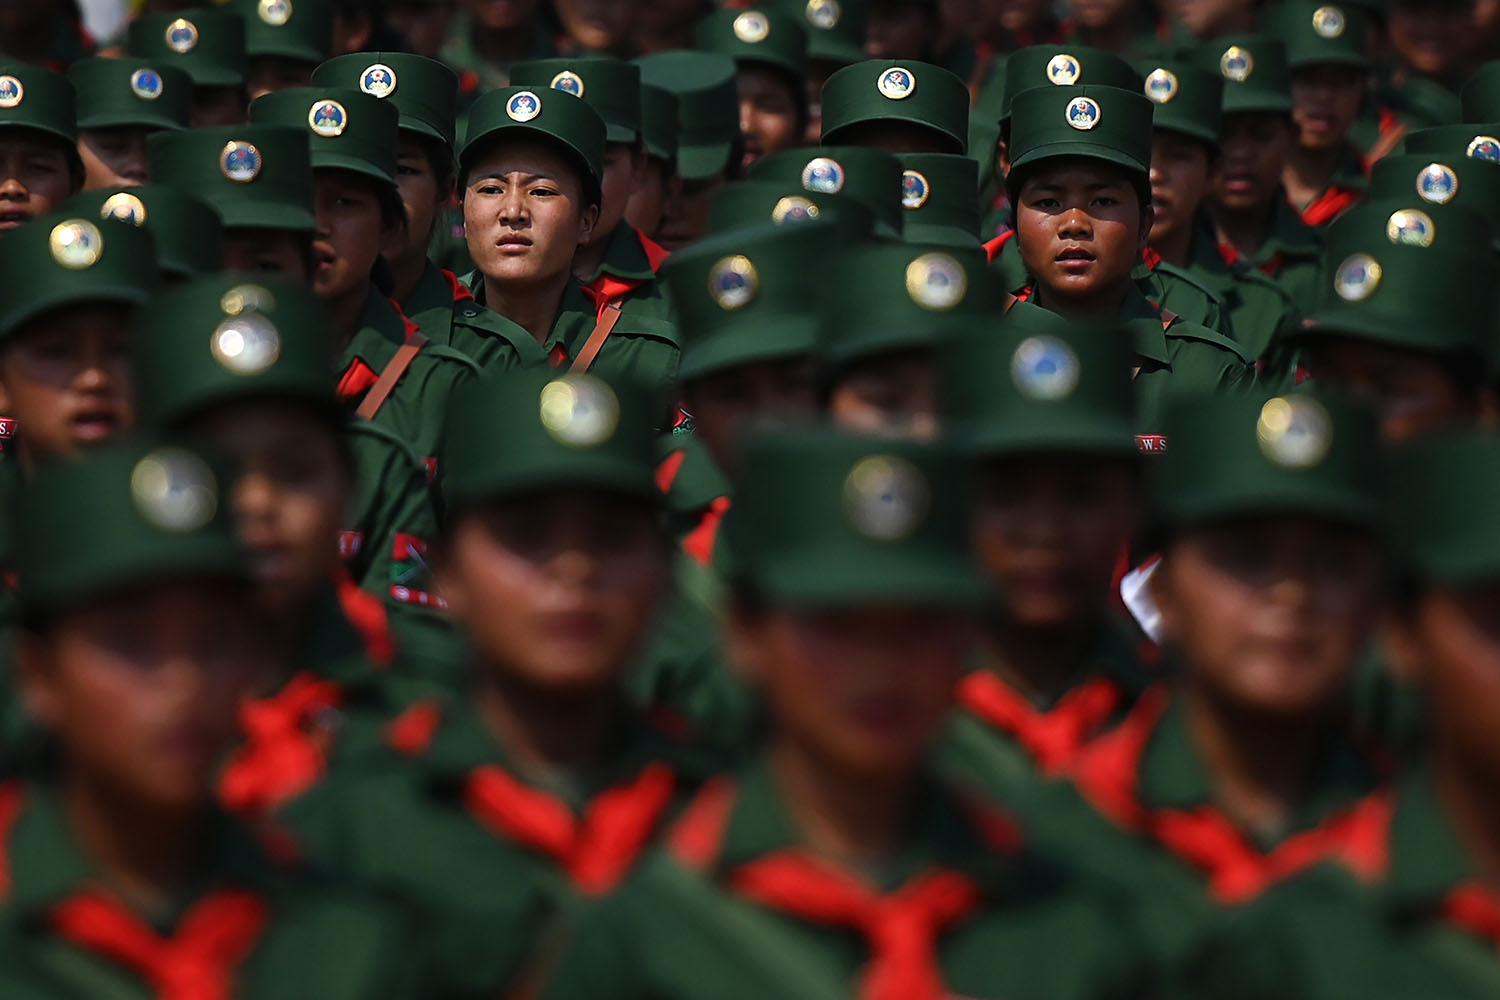 United Wa State Army (UWSA) soldiers participate in a military parade, to commemorate 30 years of a ceasefire signed with the Myanmar military in the Wa State in Panghsang on April 17. YE AUNG THU/AFP/Getty Images